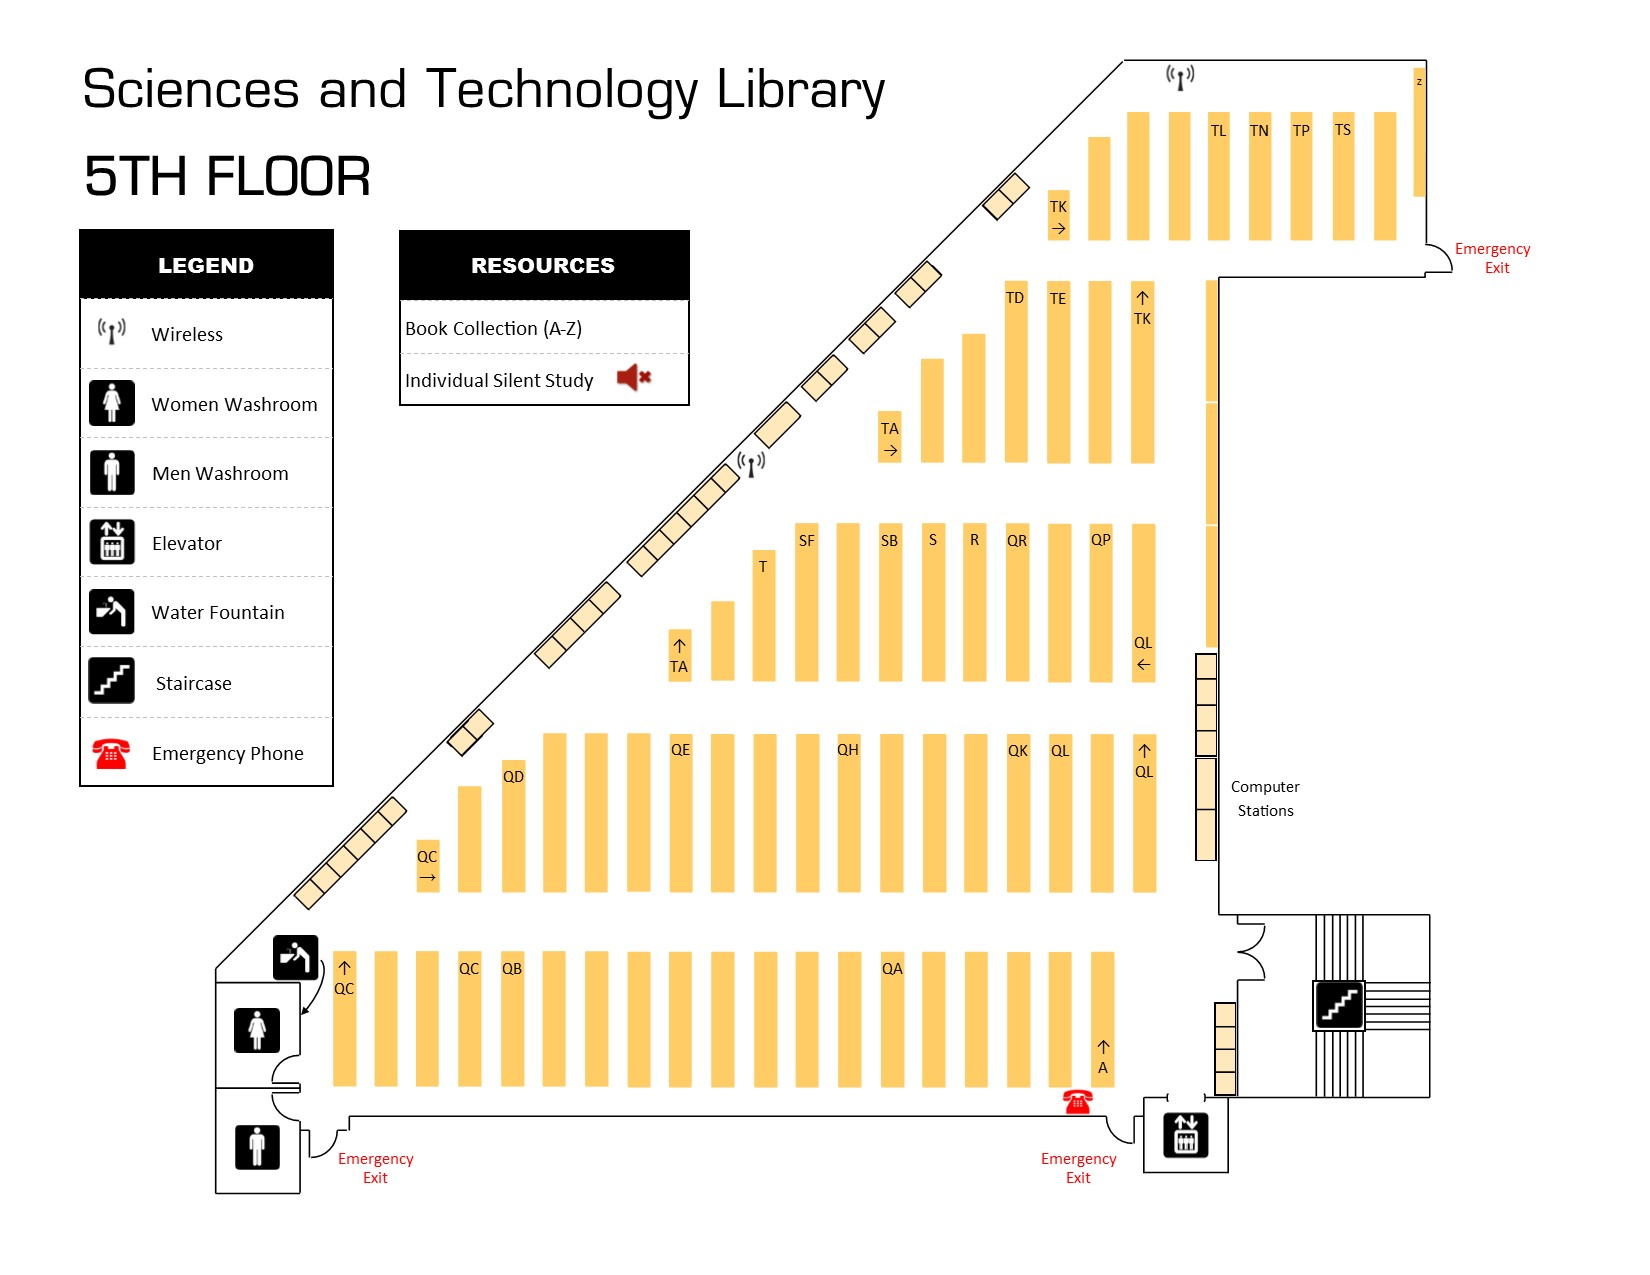 Picture file (JPEG) showing the fifth floor layout of the Sciences and Technology Library